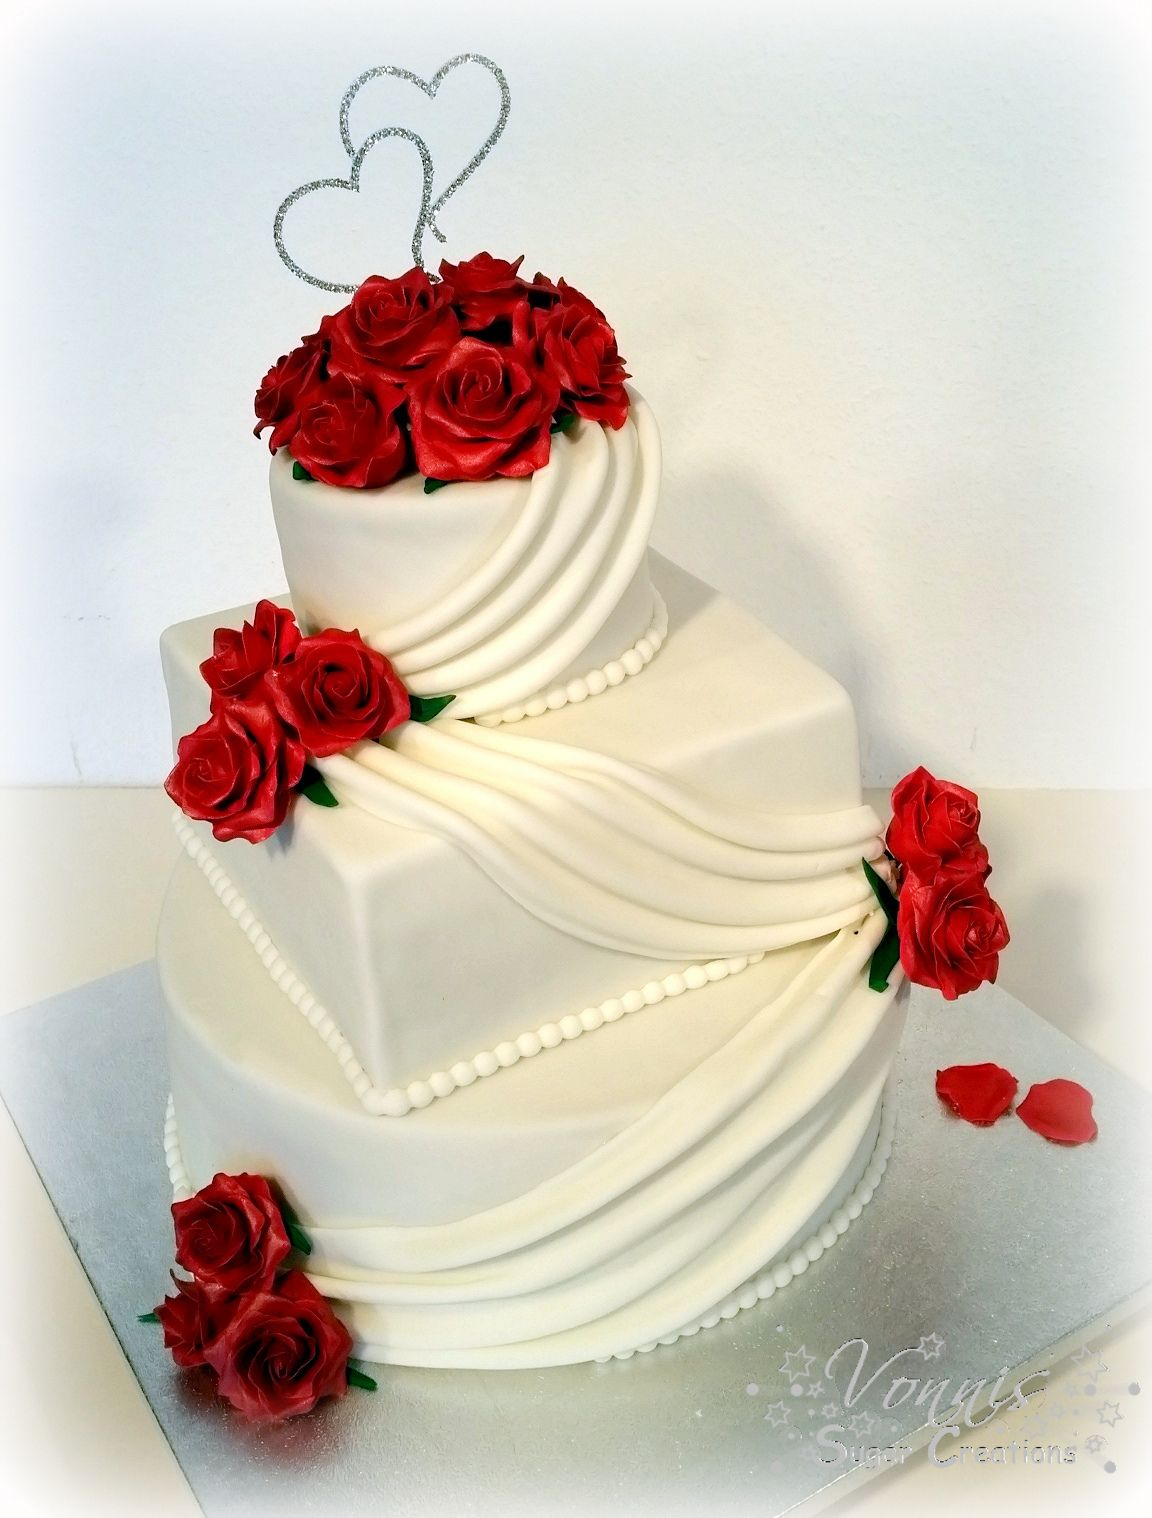 Kuchen Rot Weiß Wedding Cake White Red Roses 3 Tier Layer Classic Fondant